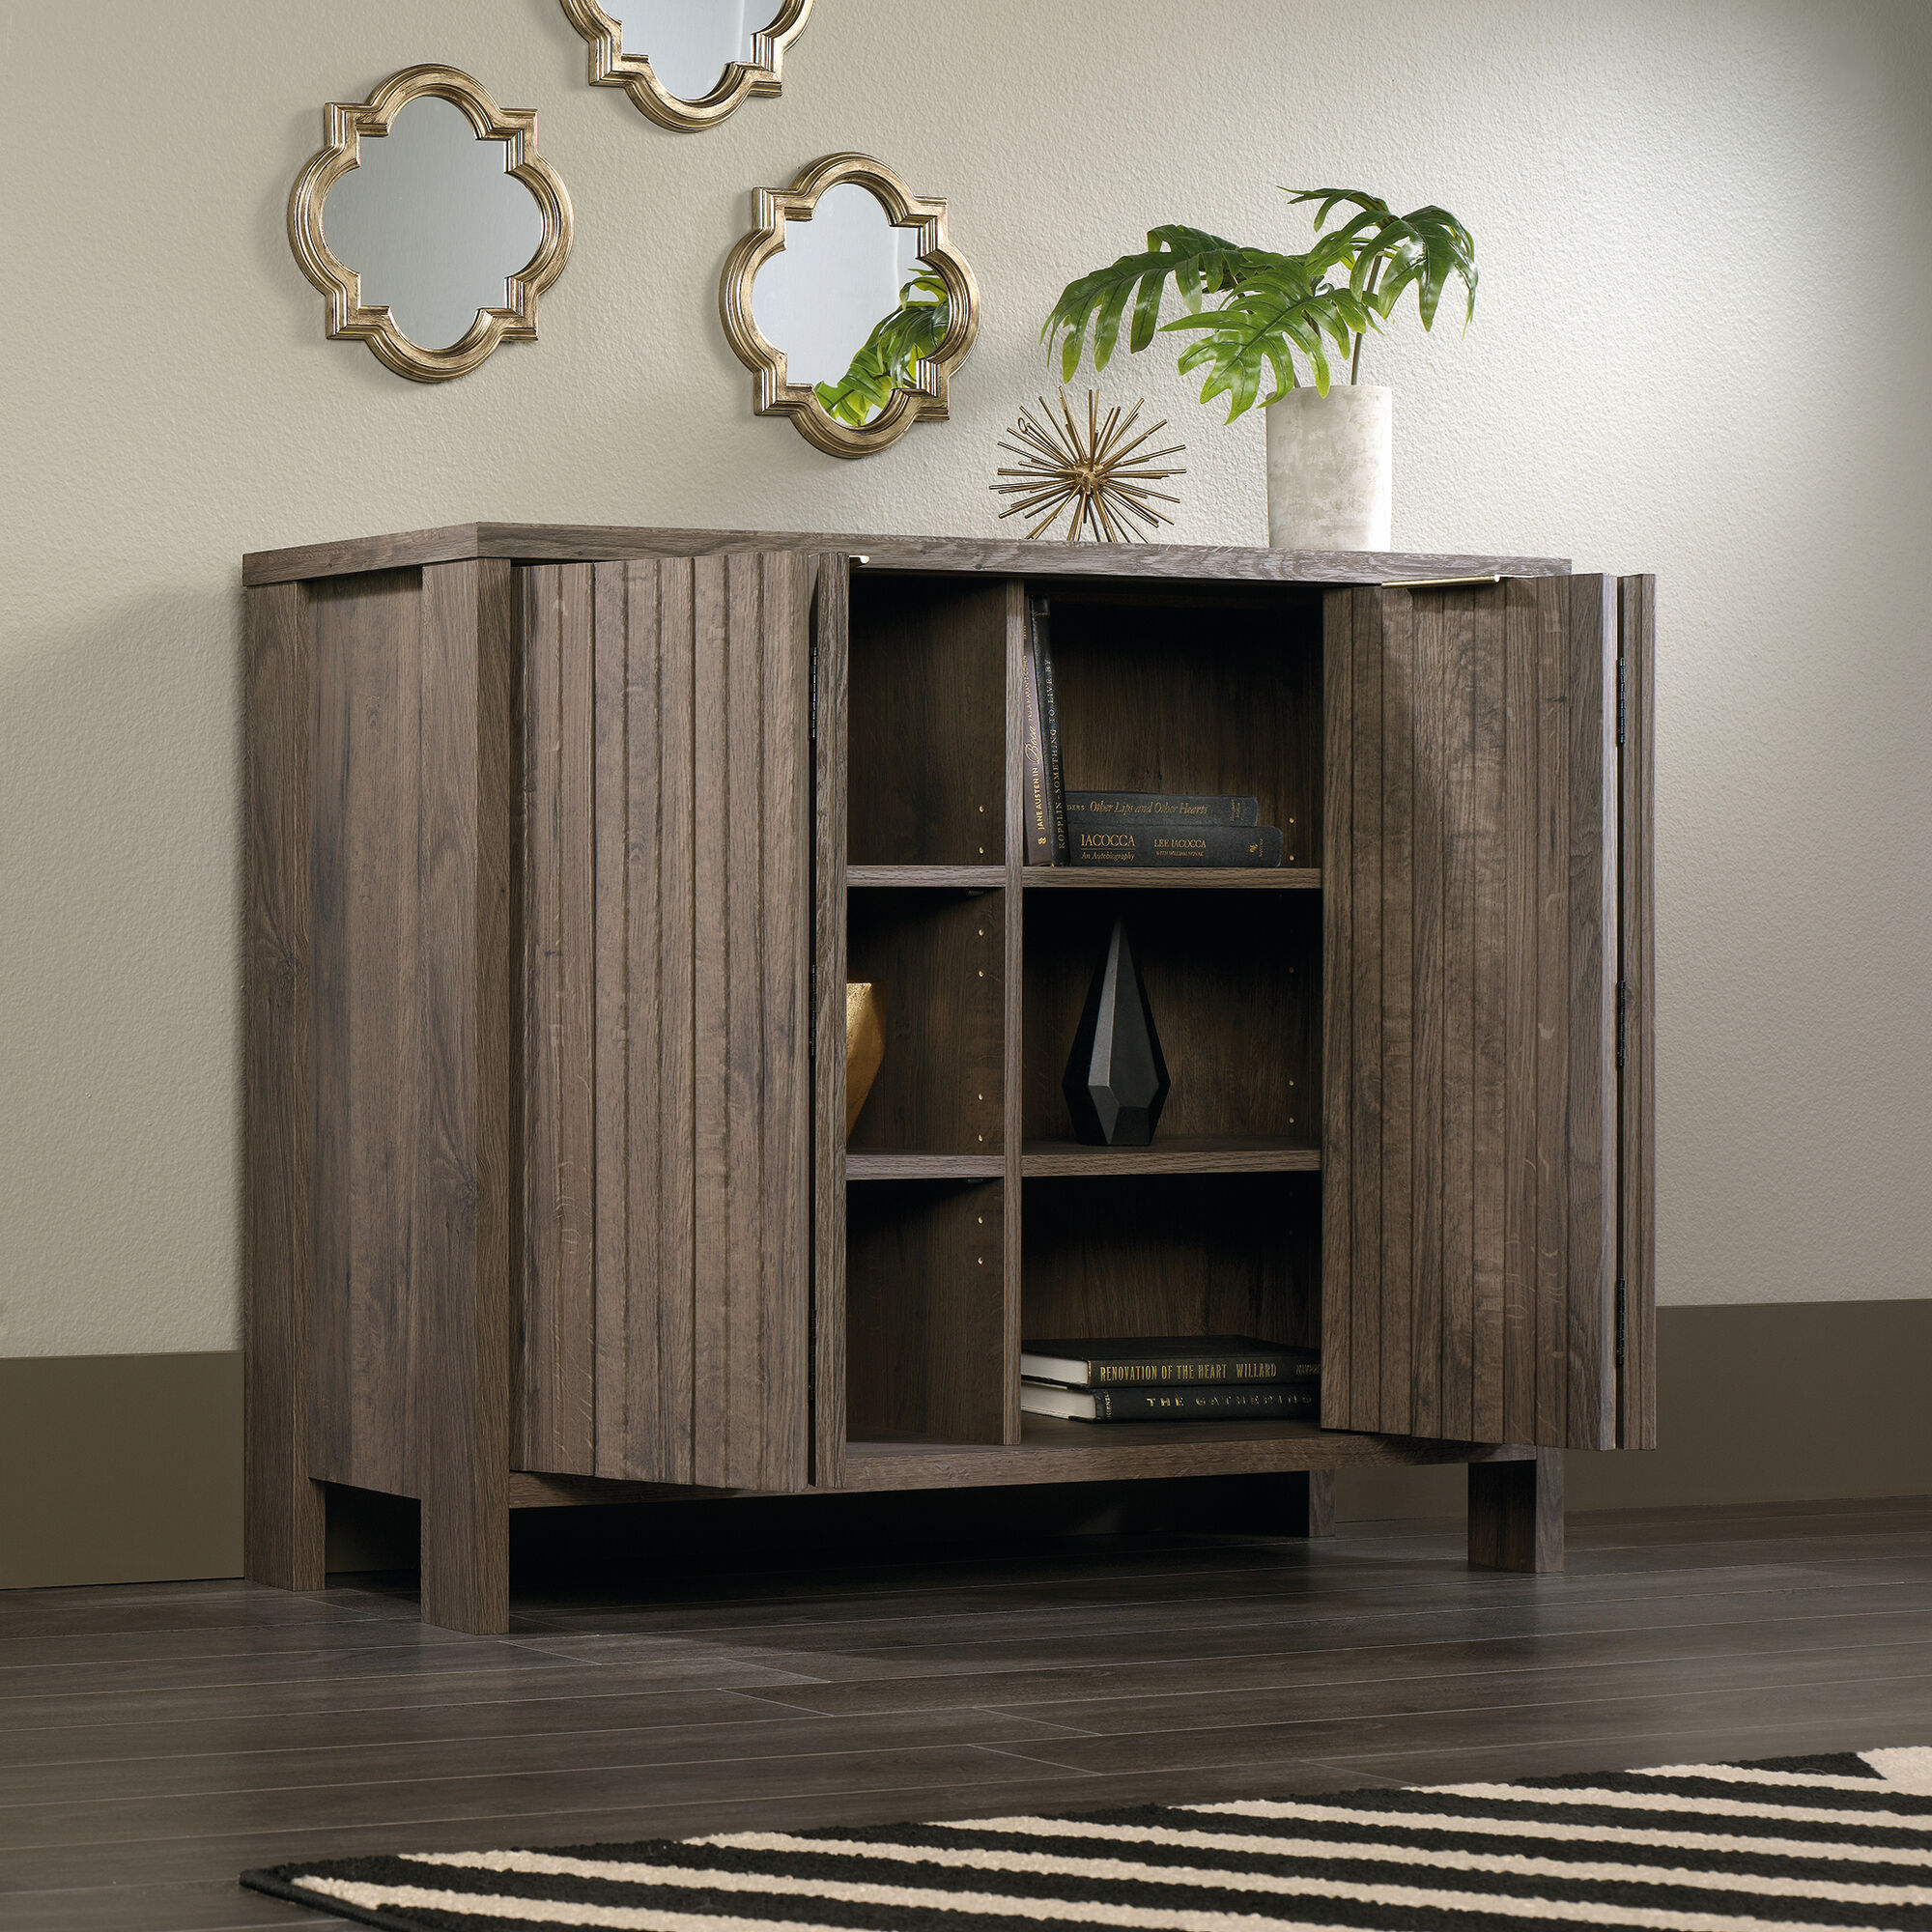 Bi fold doors contemporary storage cabinet in fossil oak mathis brothers furniture